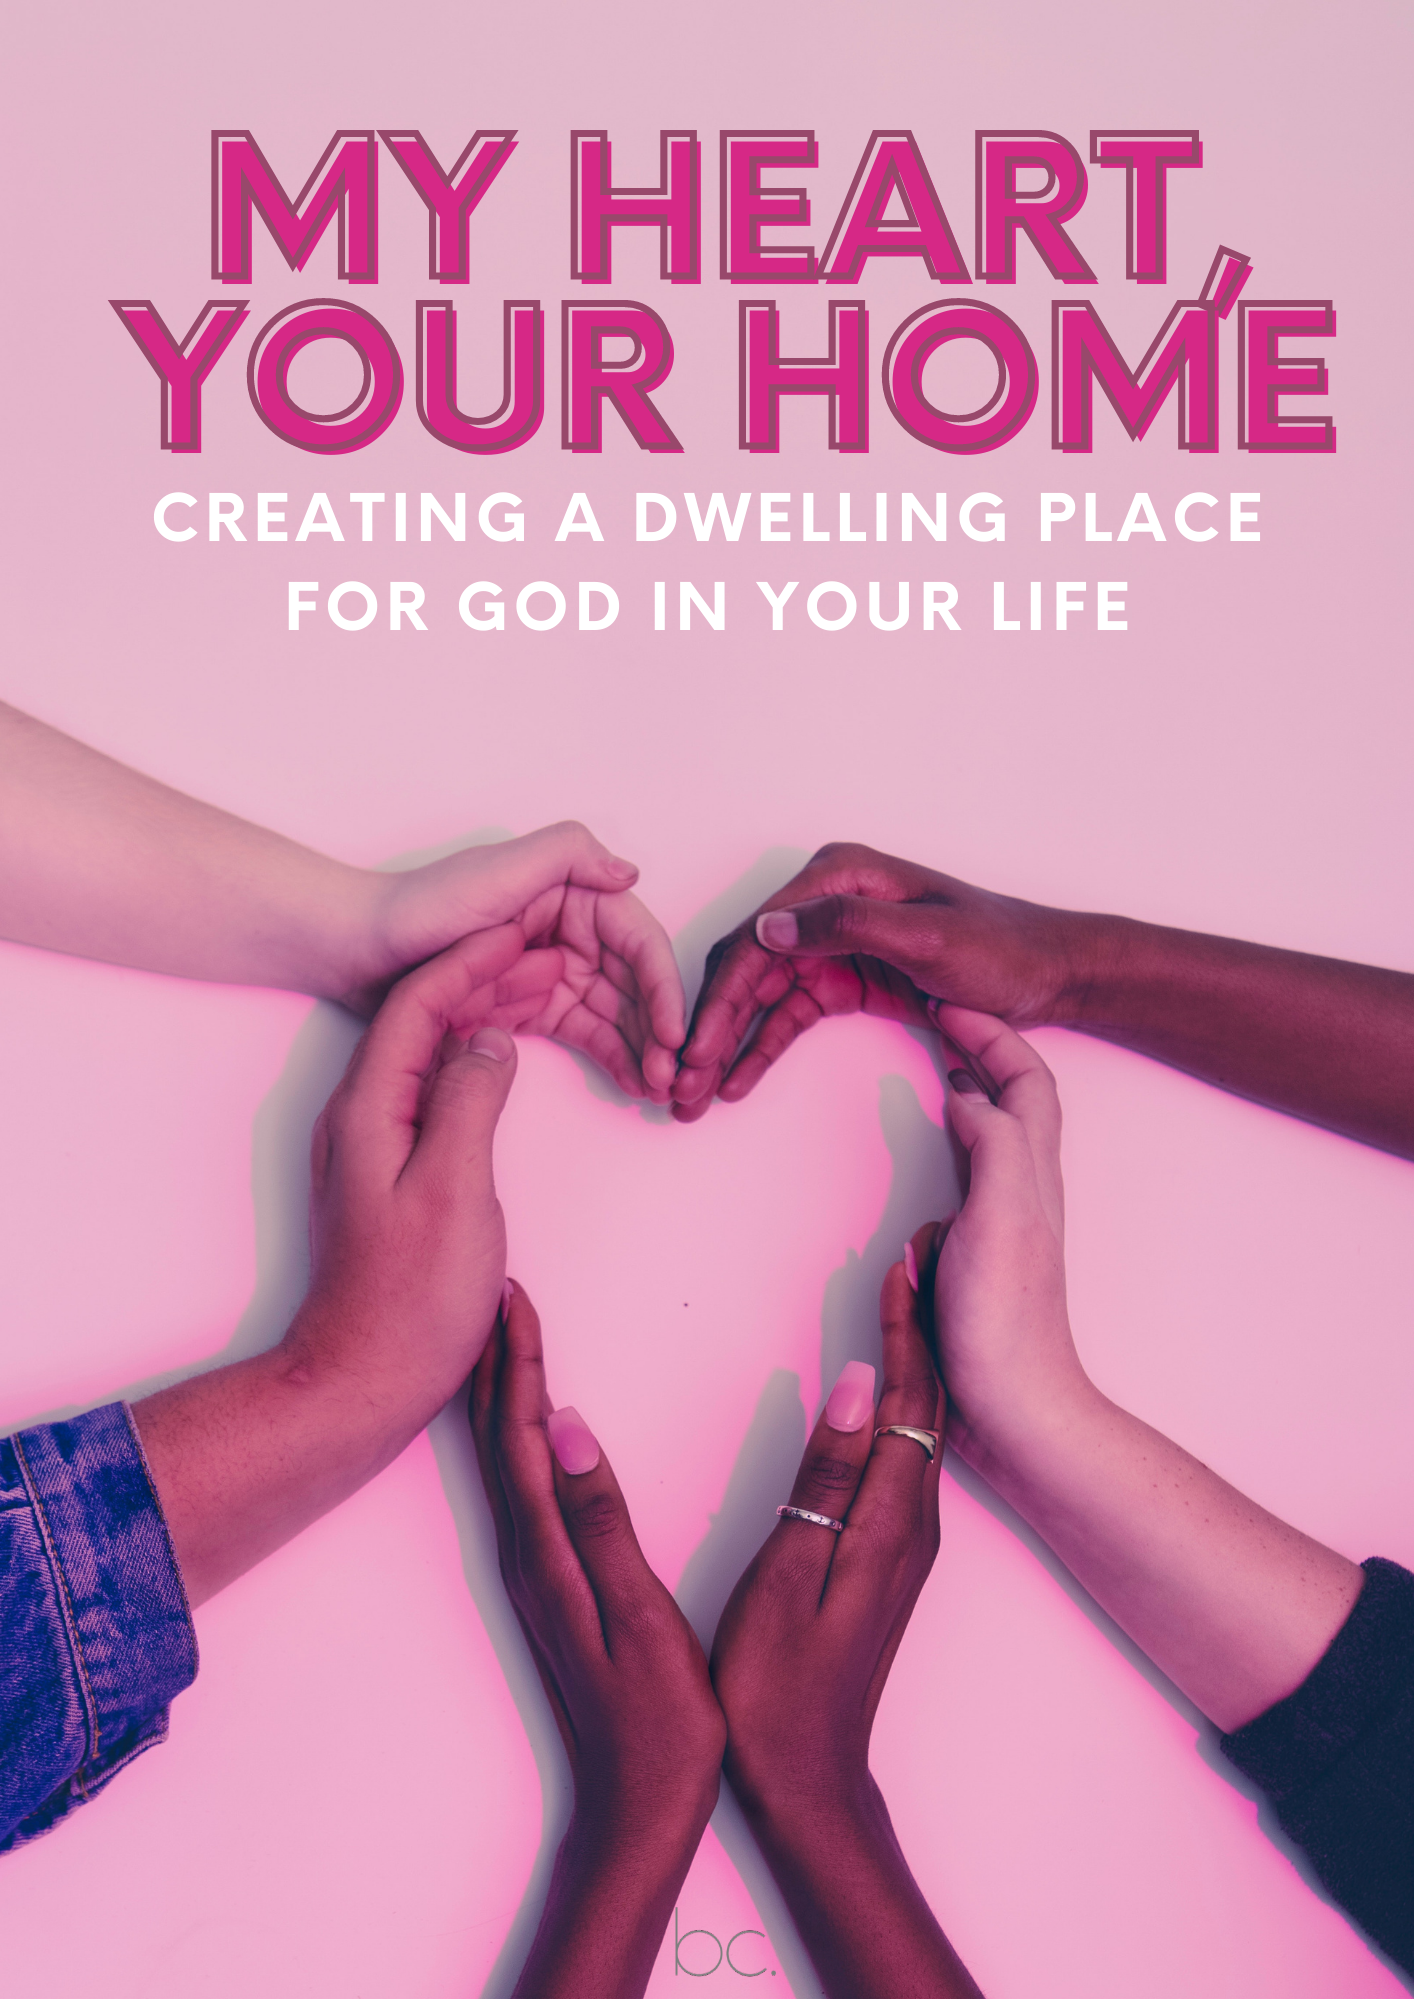 Ahead: My Heart, Your Home